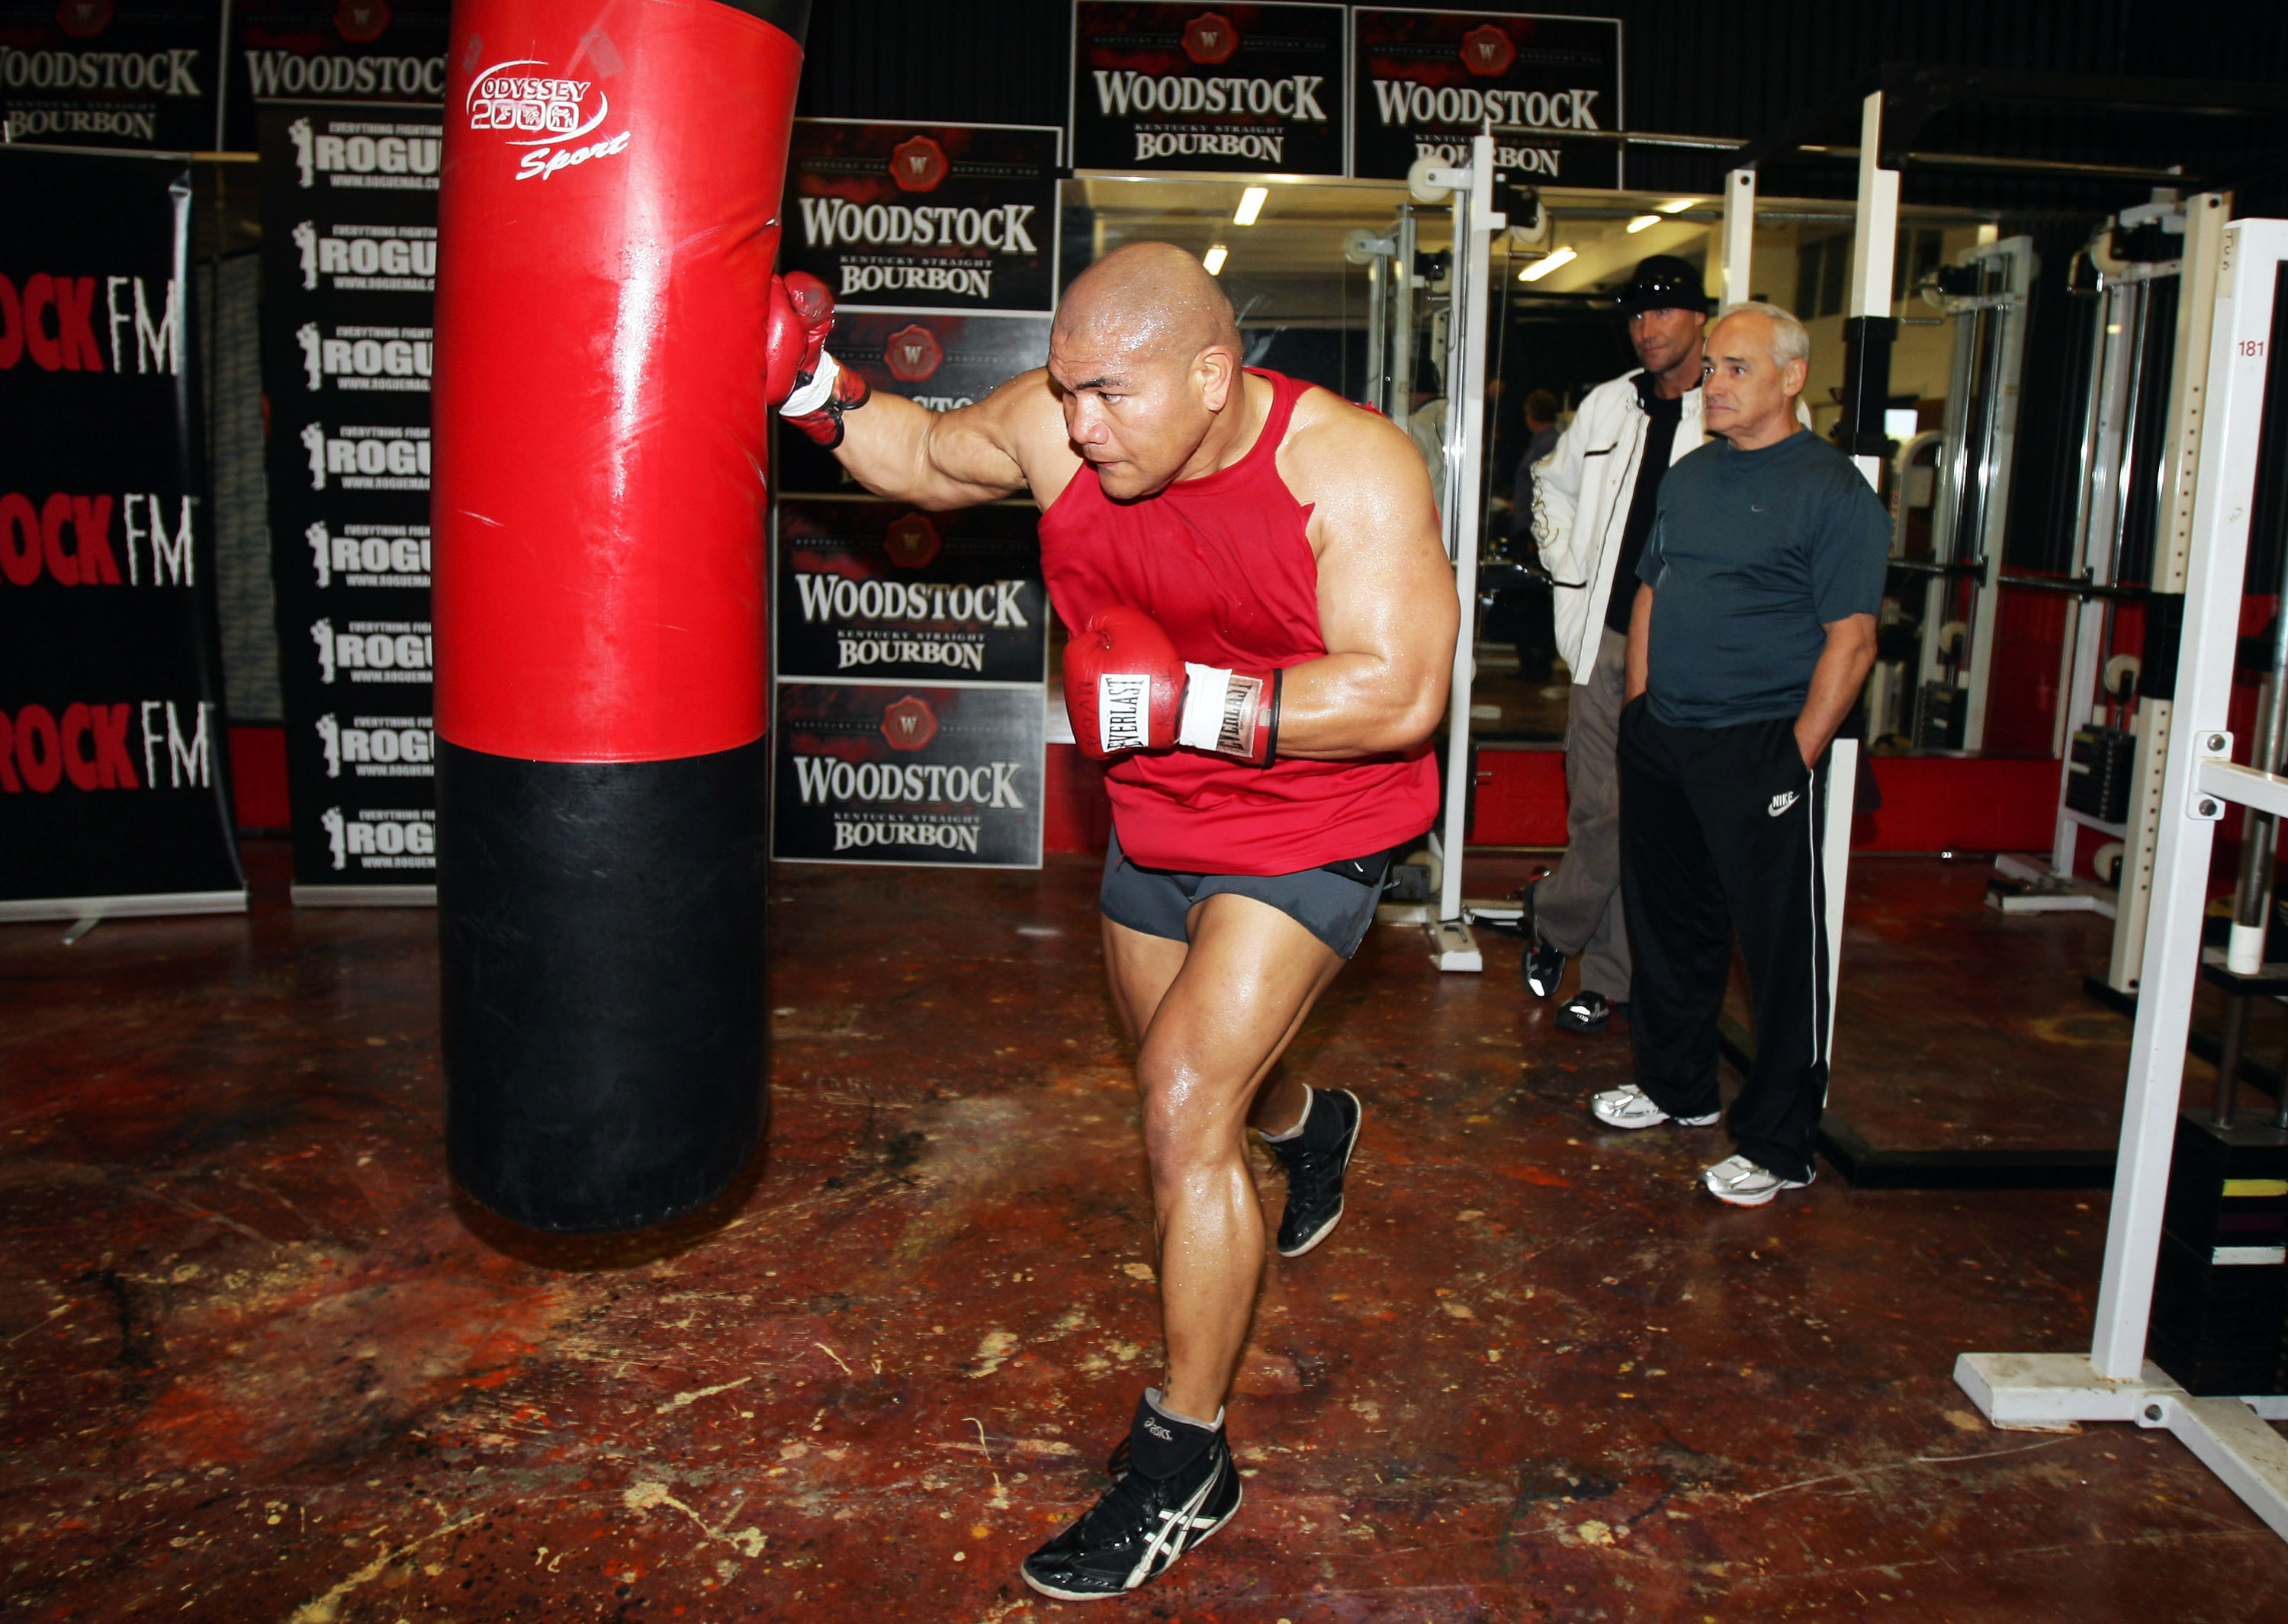 AUCKLAND, NEW ZEALAND - AUGUST 11:  David Tua's trainers Lee Parore and Roger Bloodworth watch him punch the heavy bag during a training session at his gym on August 11, 2009 in Auckland, New Zealand.  (Photo by Sandra Mu/Getty Images)